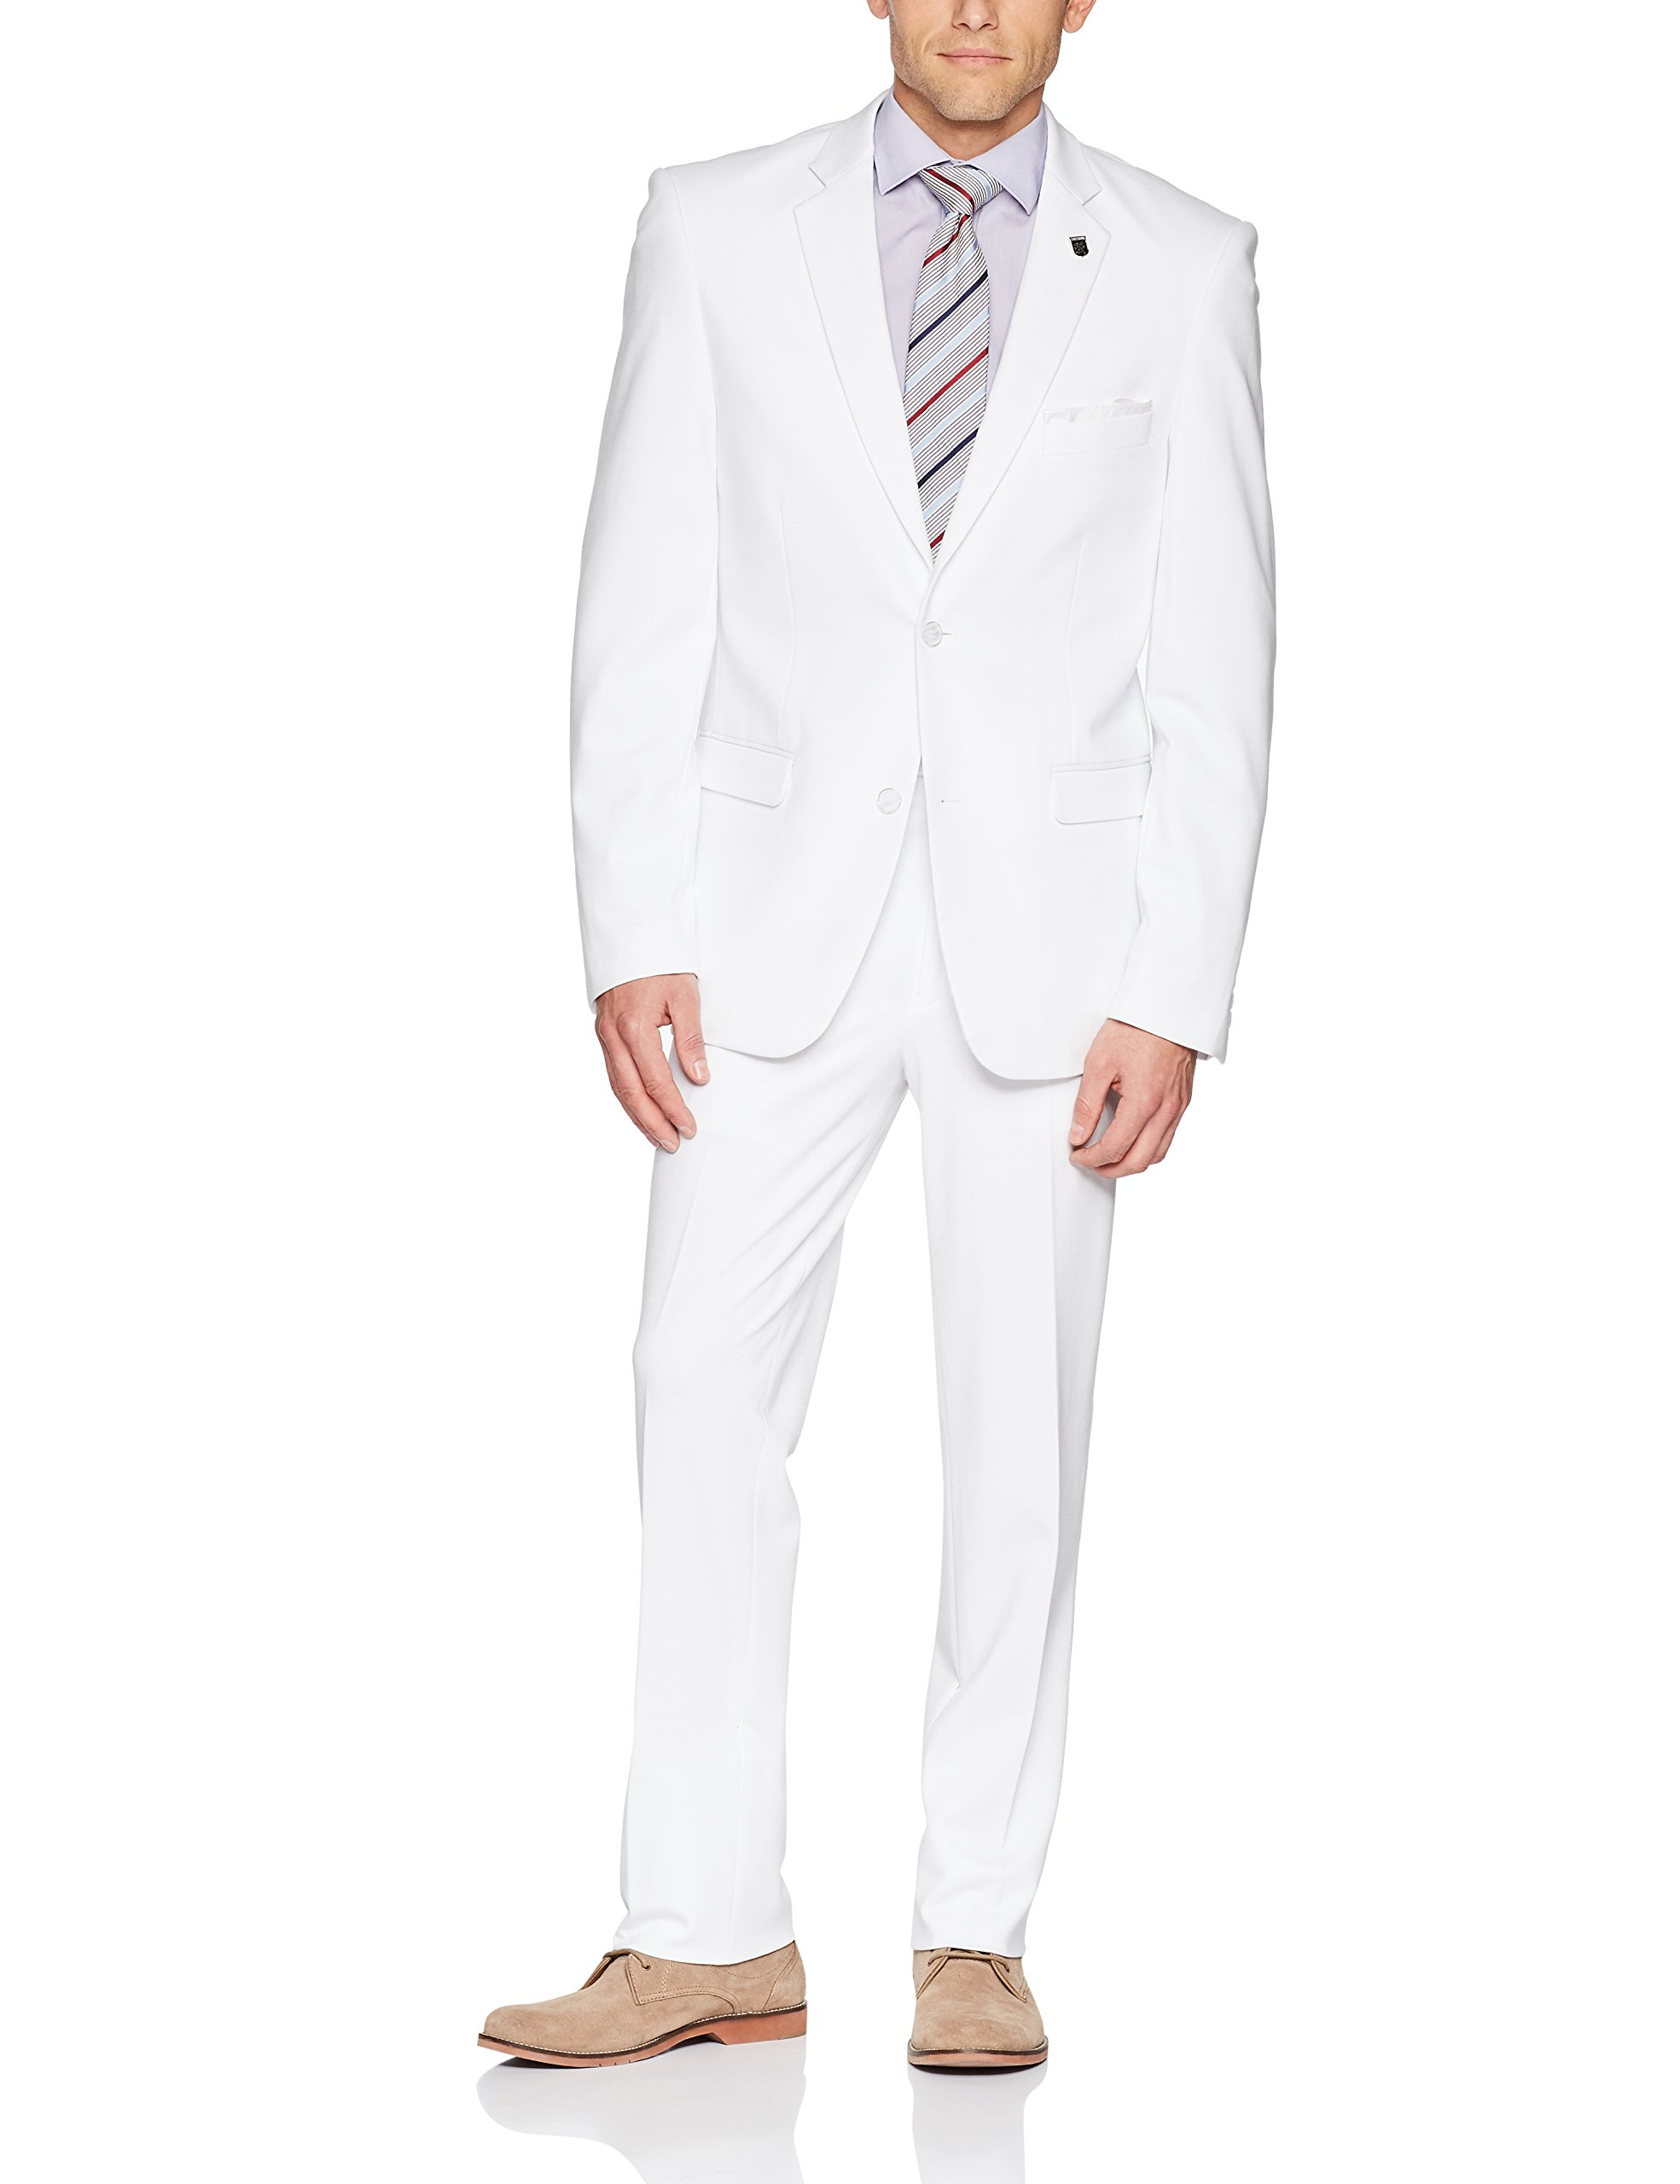 STACY ADAMS Men's Big and Tall Single Breasted Real Flex Stretch Fabric Suit, White, 50 Long